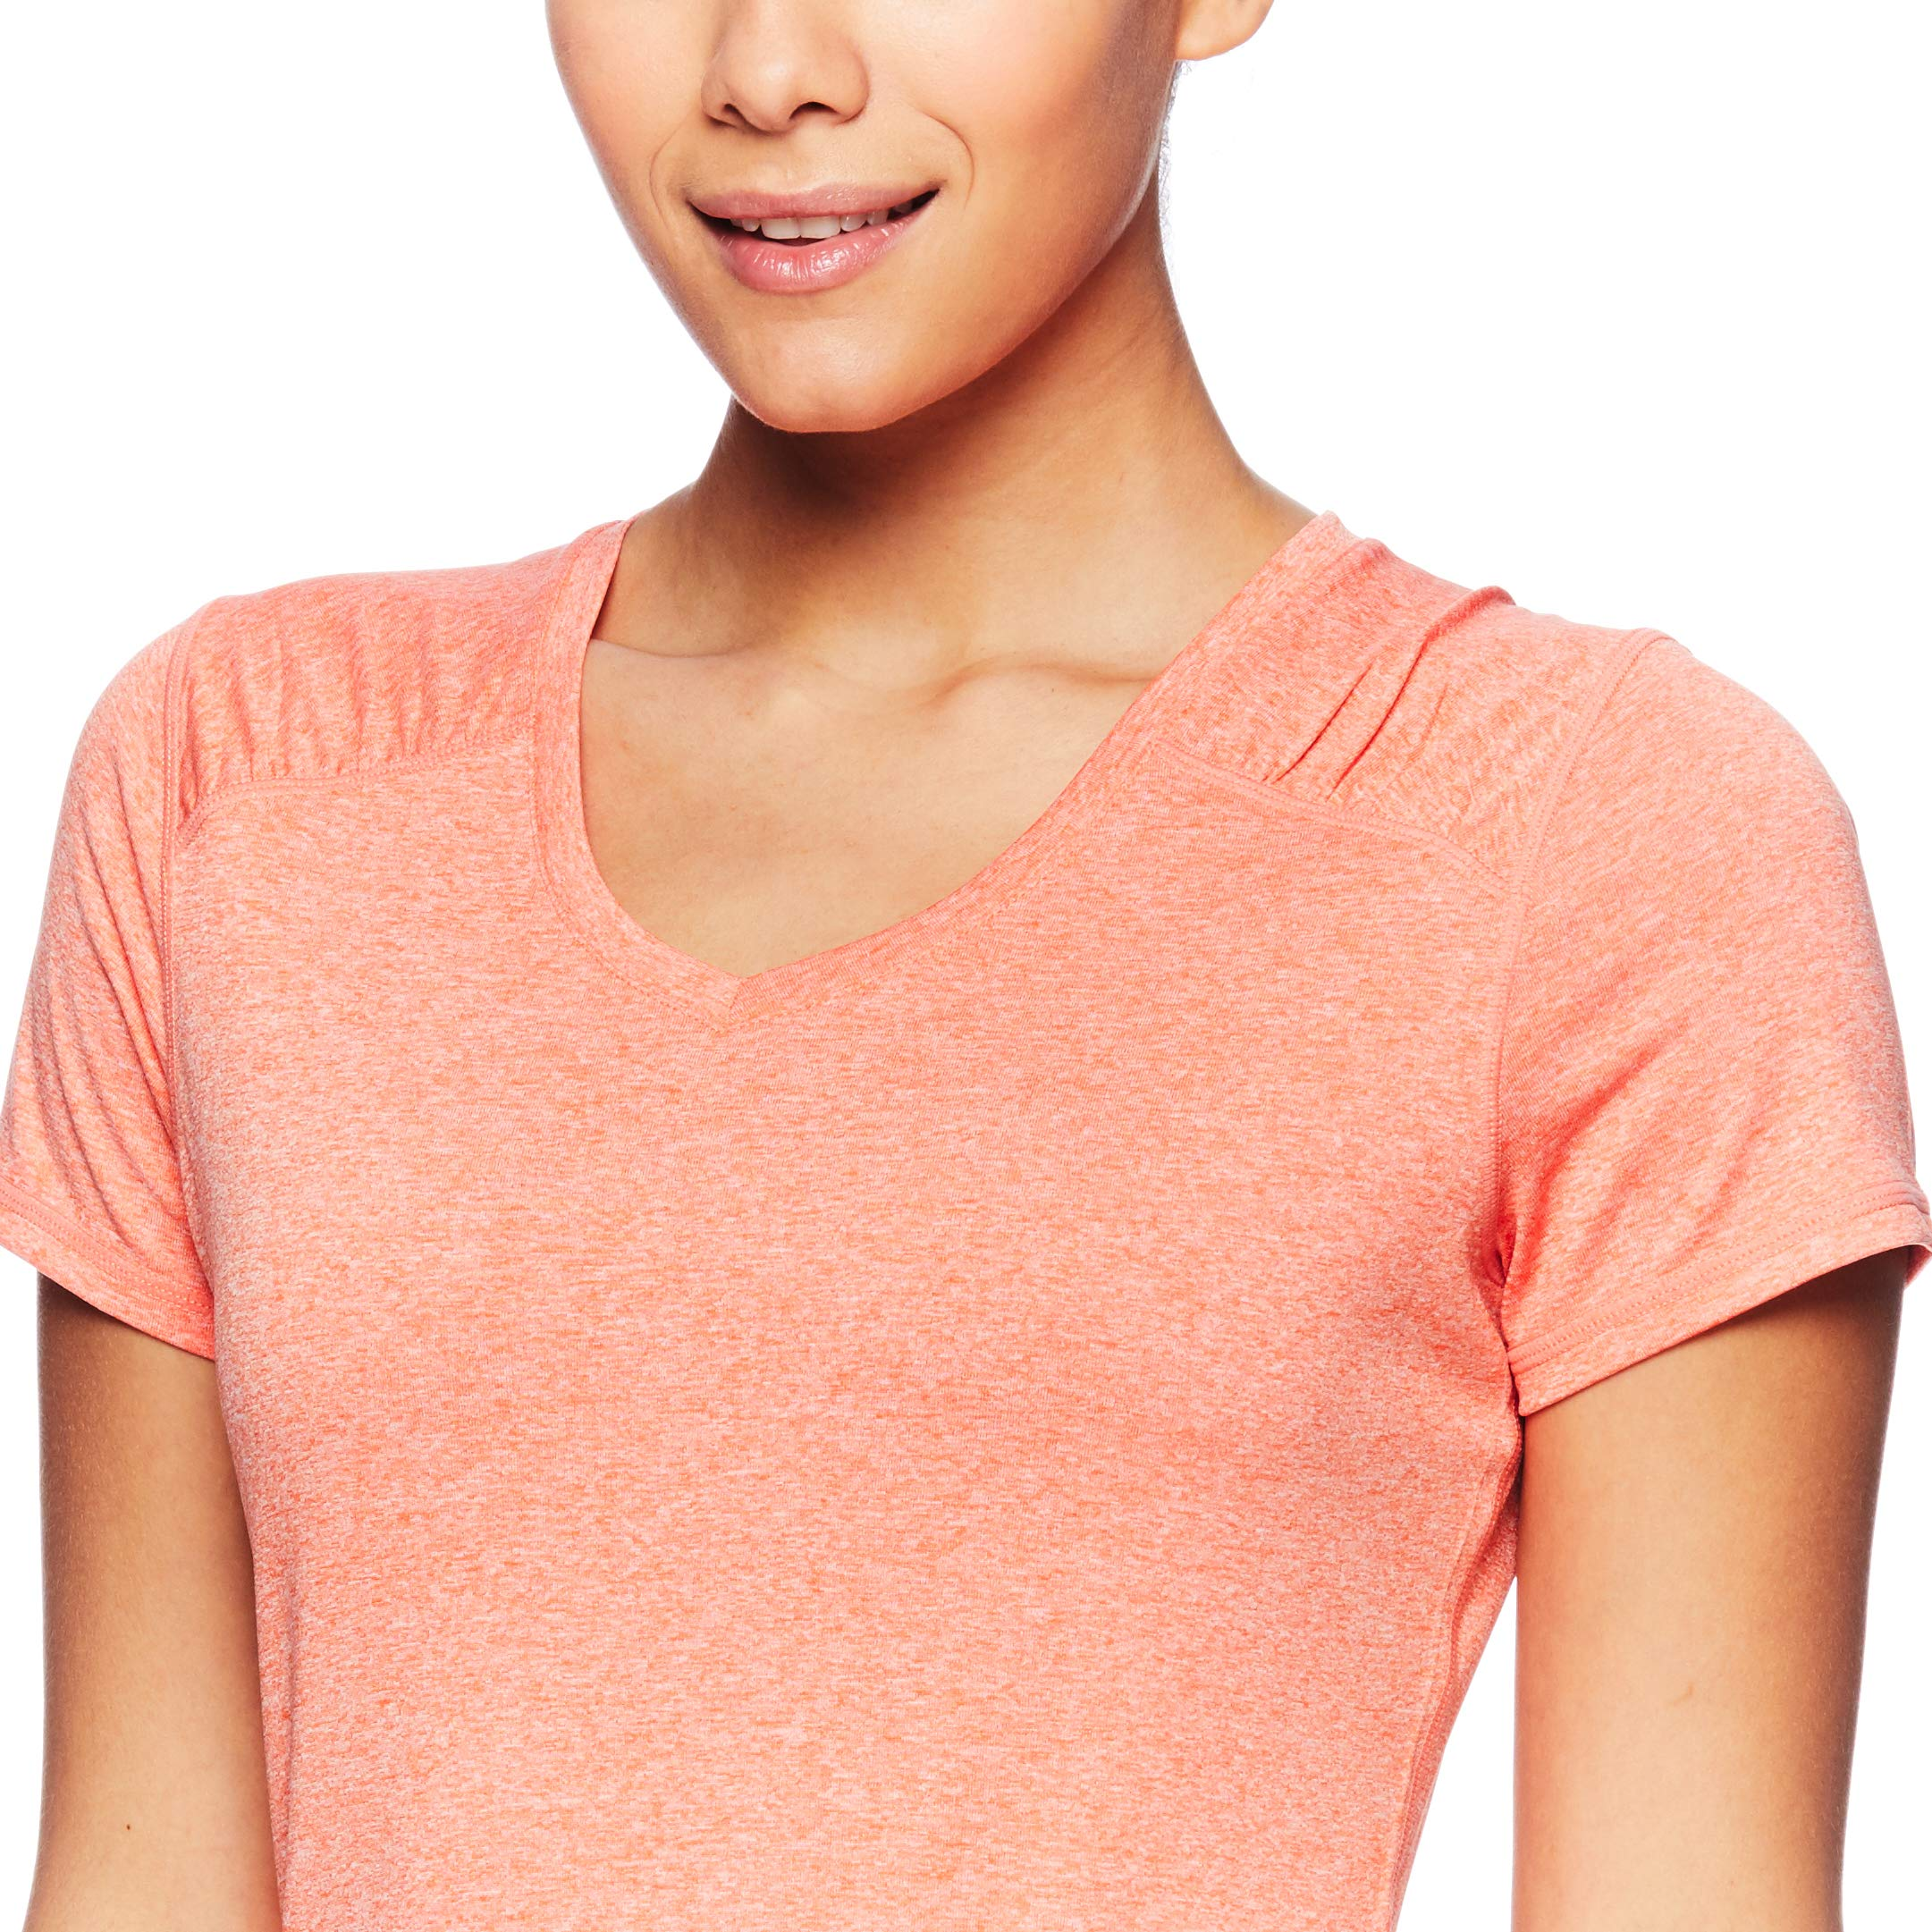 HEAD Women's Brianna Shirred Short Sleeve Workout T-Shirt - Marled Performance Crew Neck Activewear Top - Brianna Peach Echo Heather, X-Small by HEAD (Image #4)